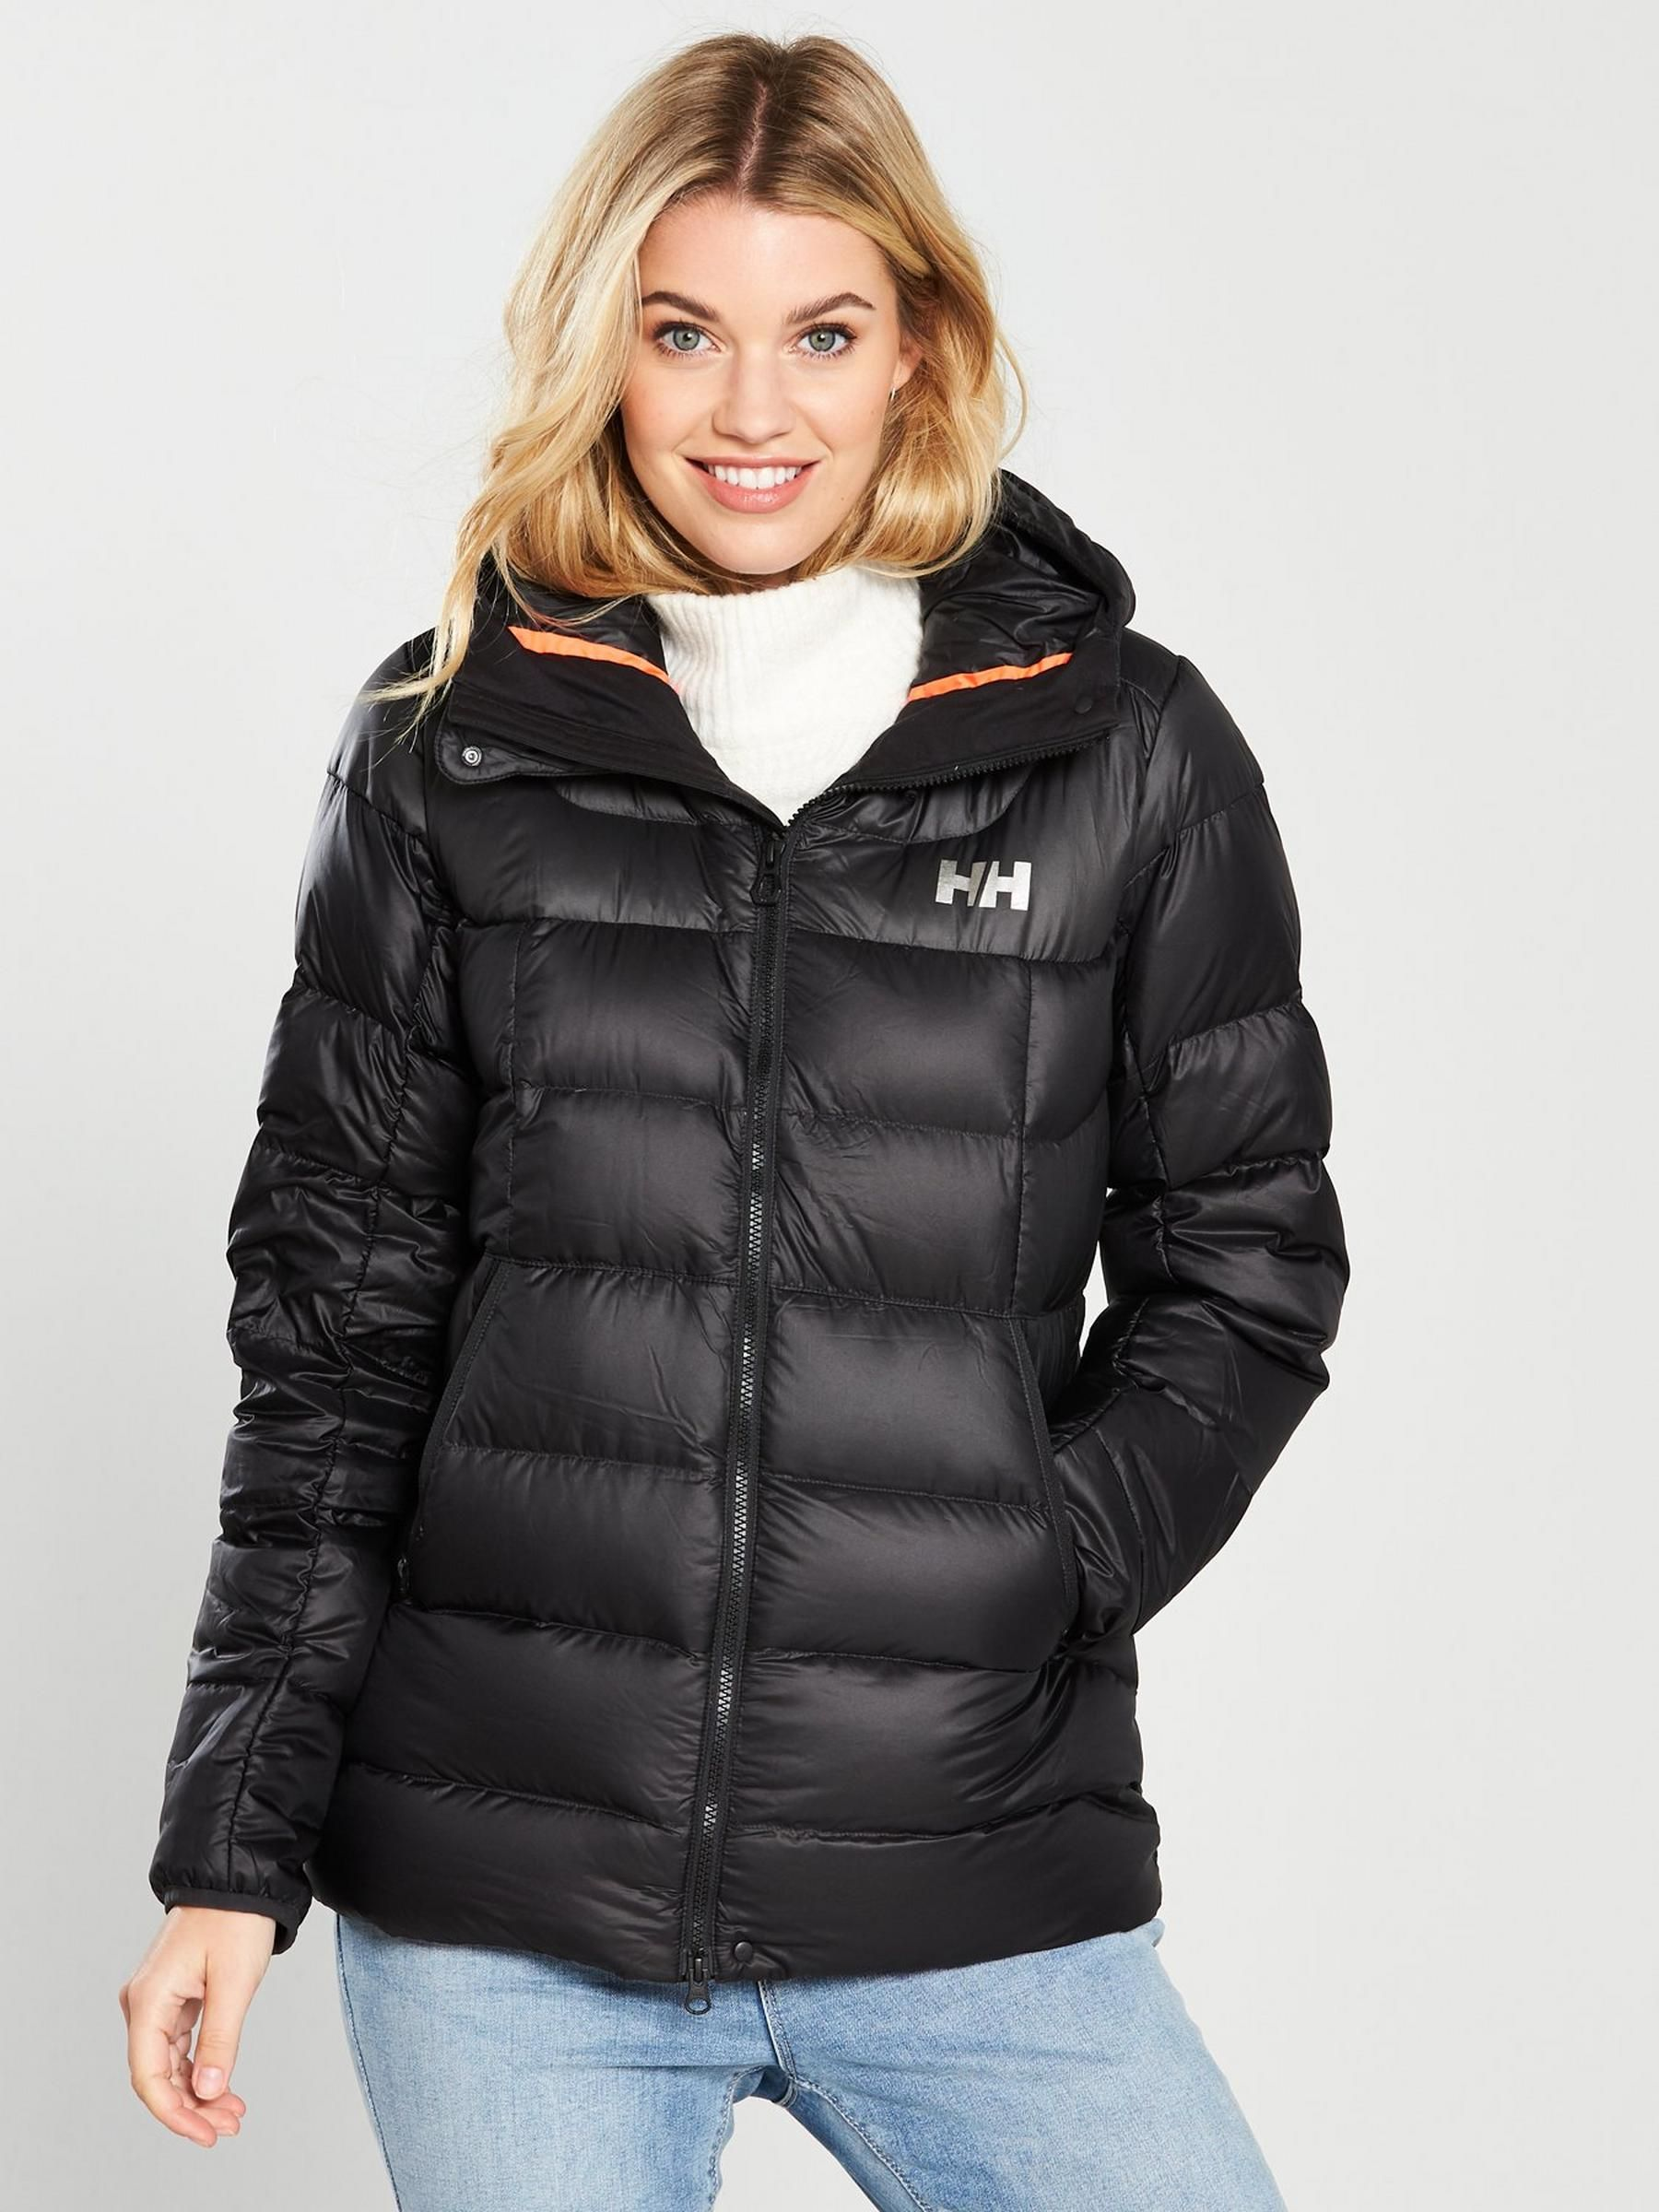 41cc3addd Helly Hansen Glacier Down Jacket - Black in 2019 | puffy jacket ...